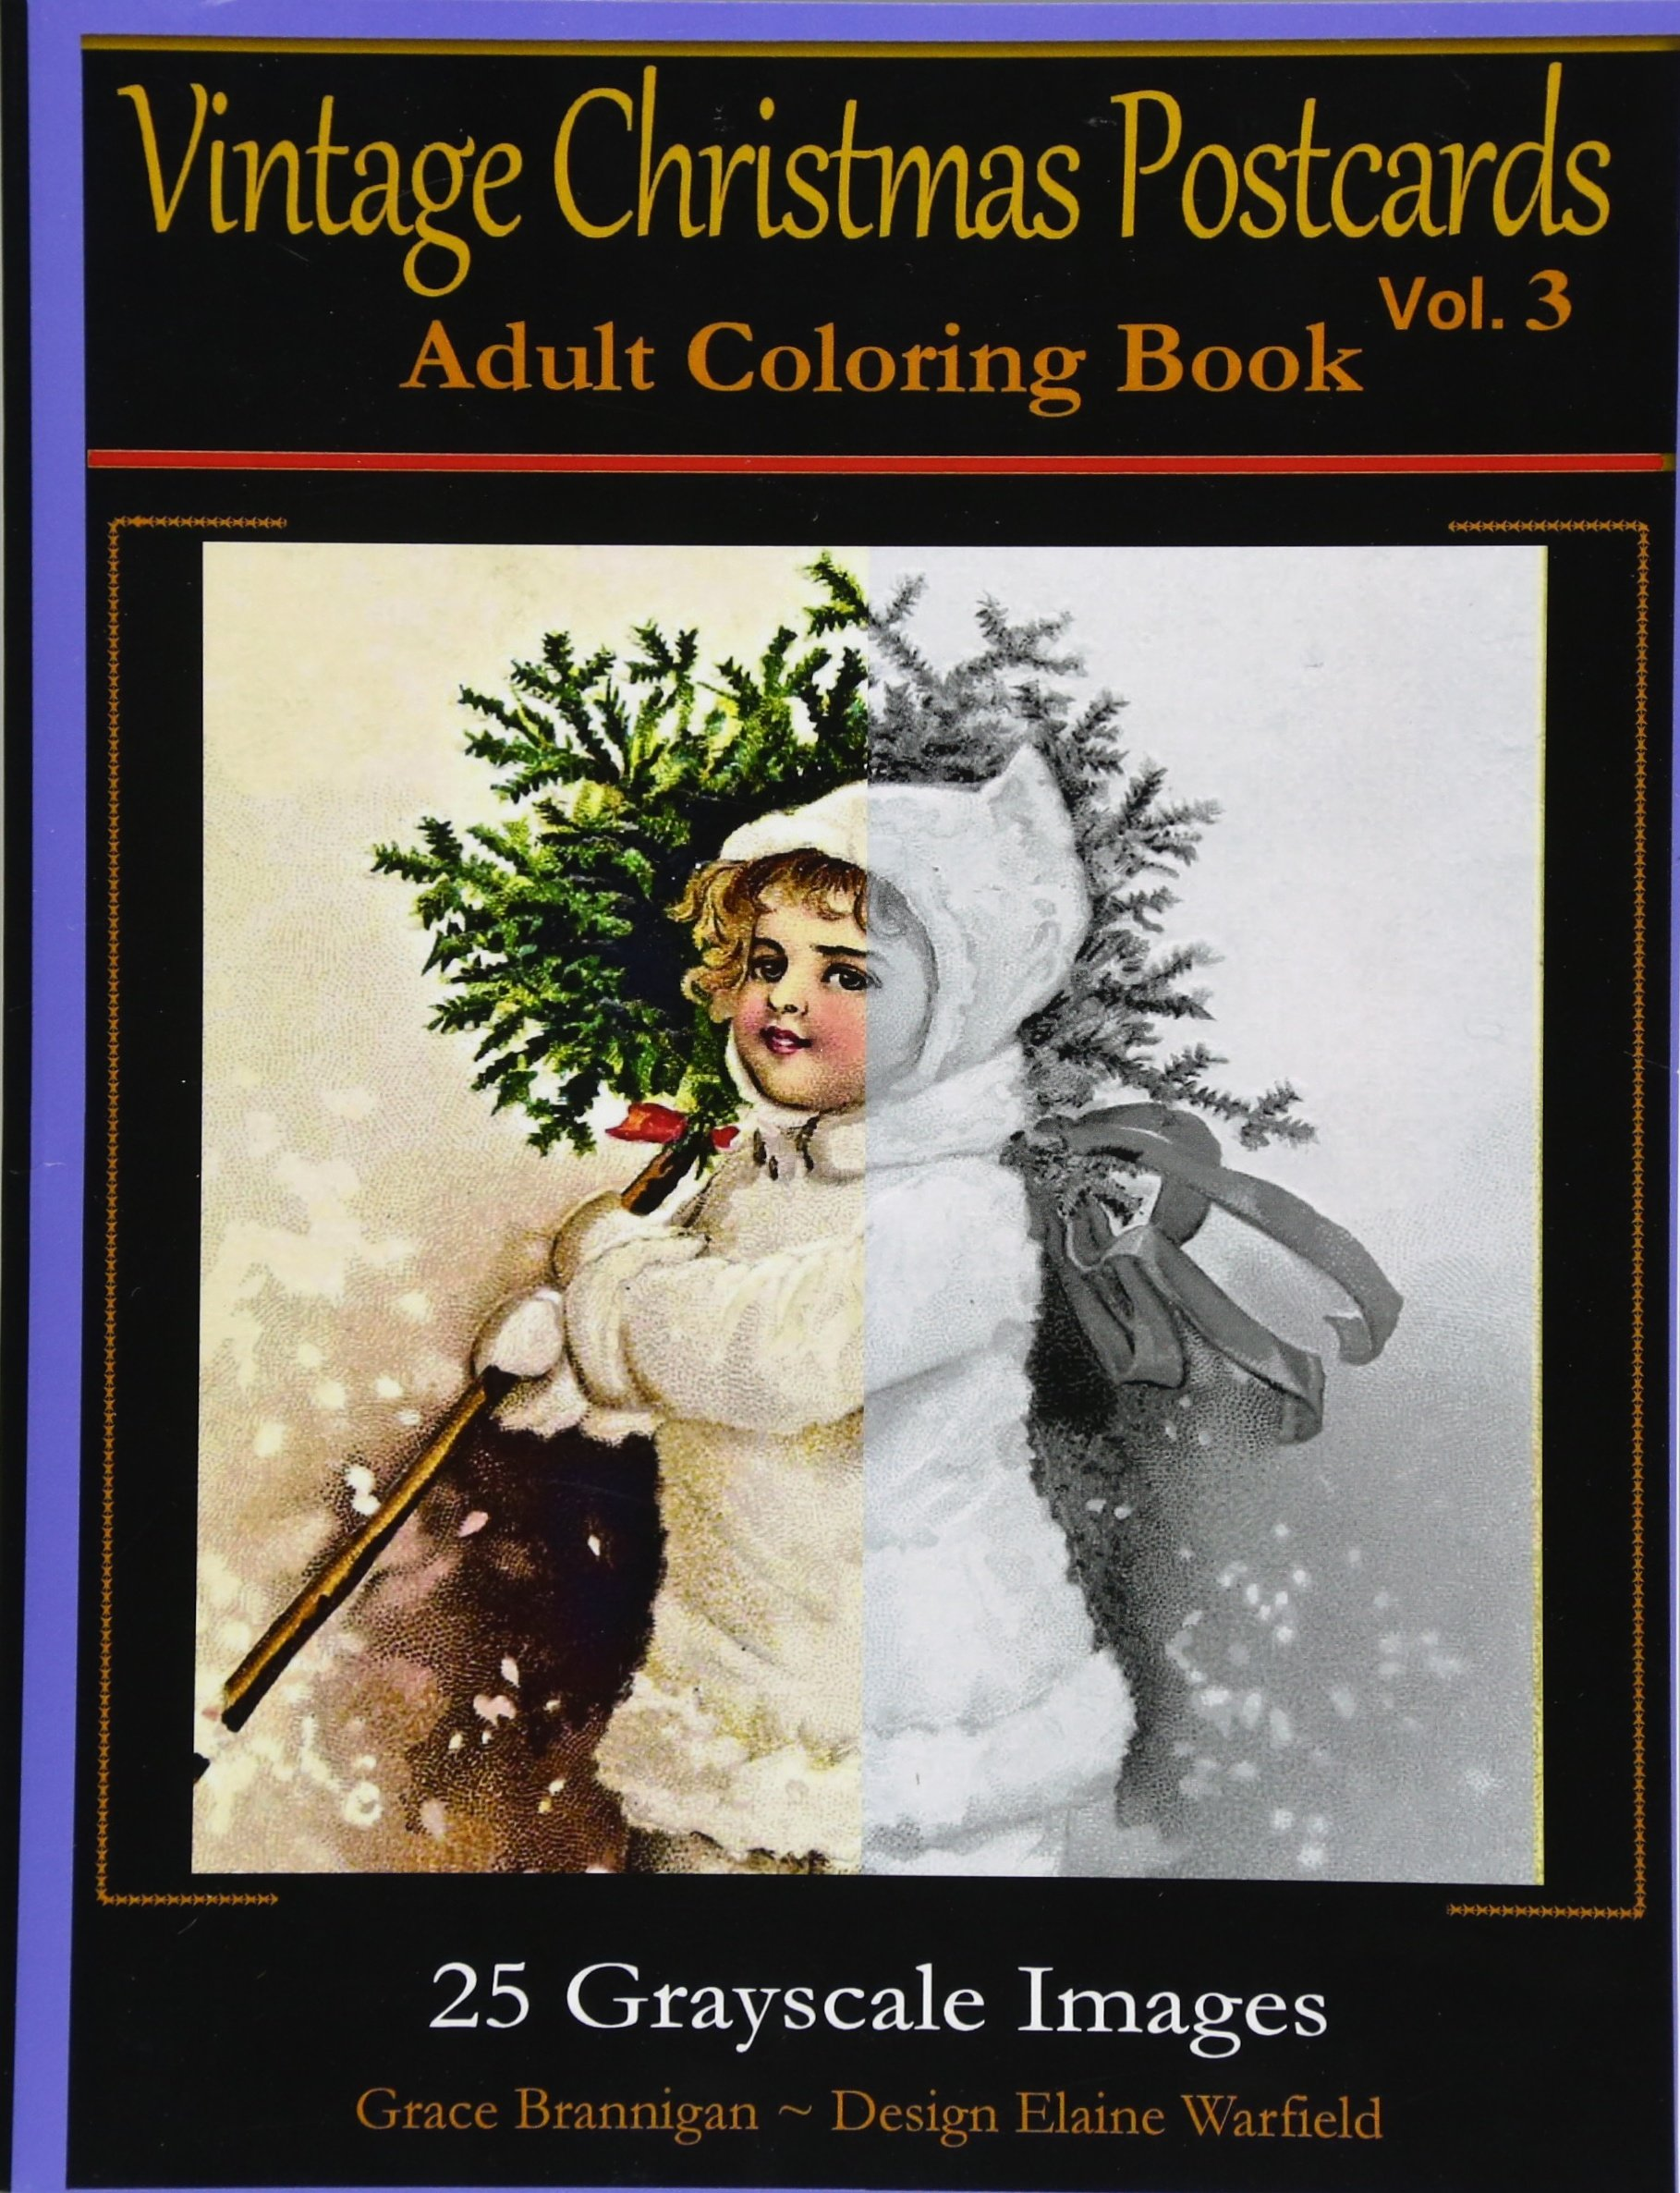 Download Vintage Christmas Postcards Vol 3 Adult Coloring Book: 25 Grayscale Images: Adult Coloring Book (Adult Coloring Books) (Volume 6) PDF